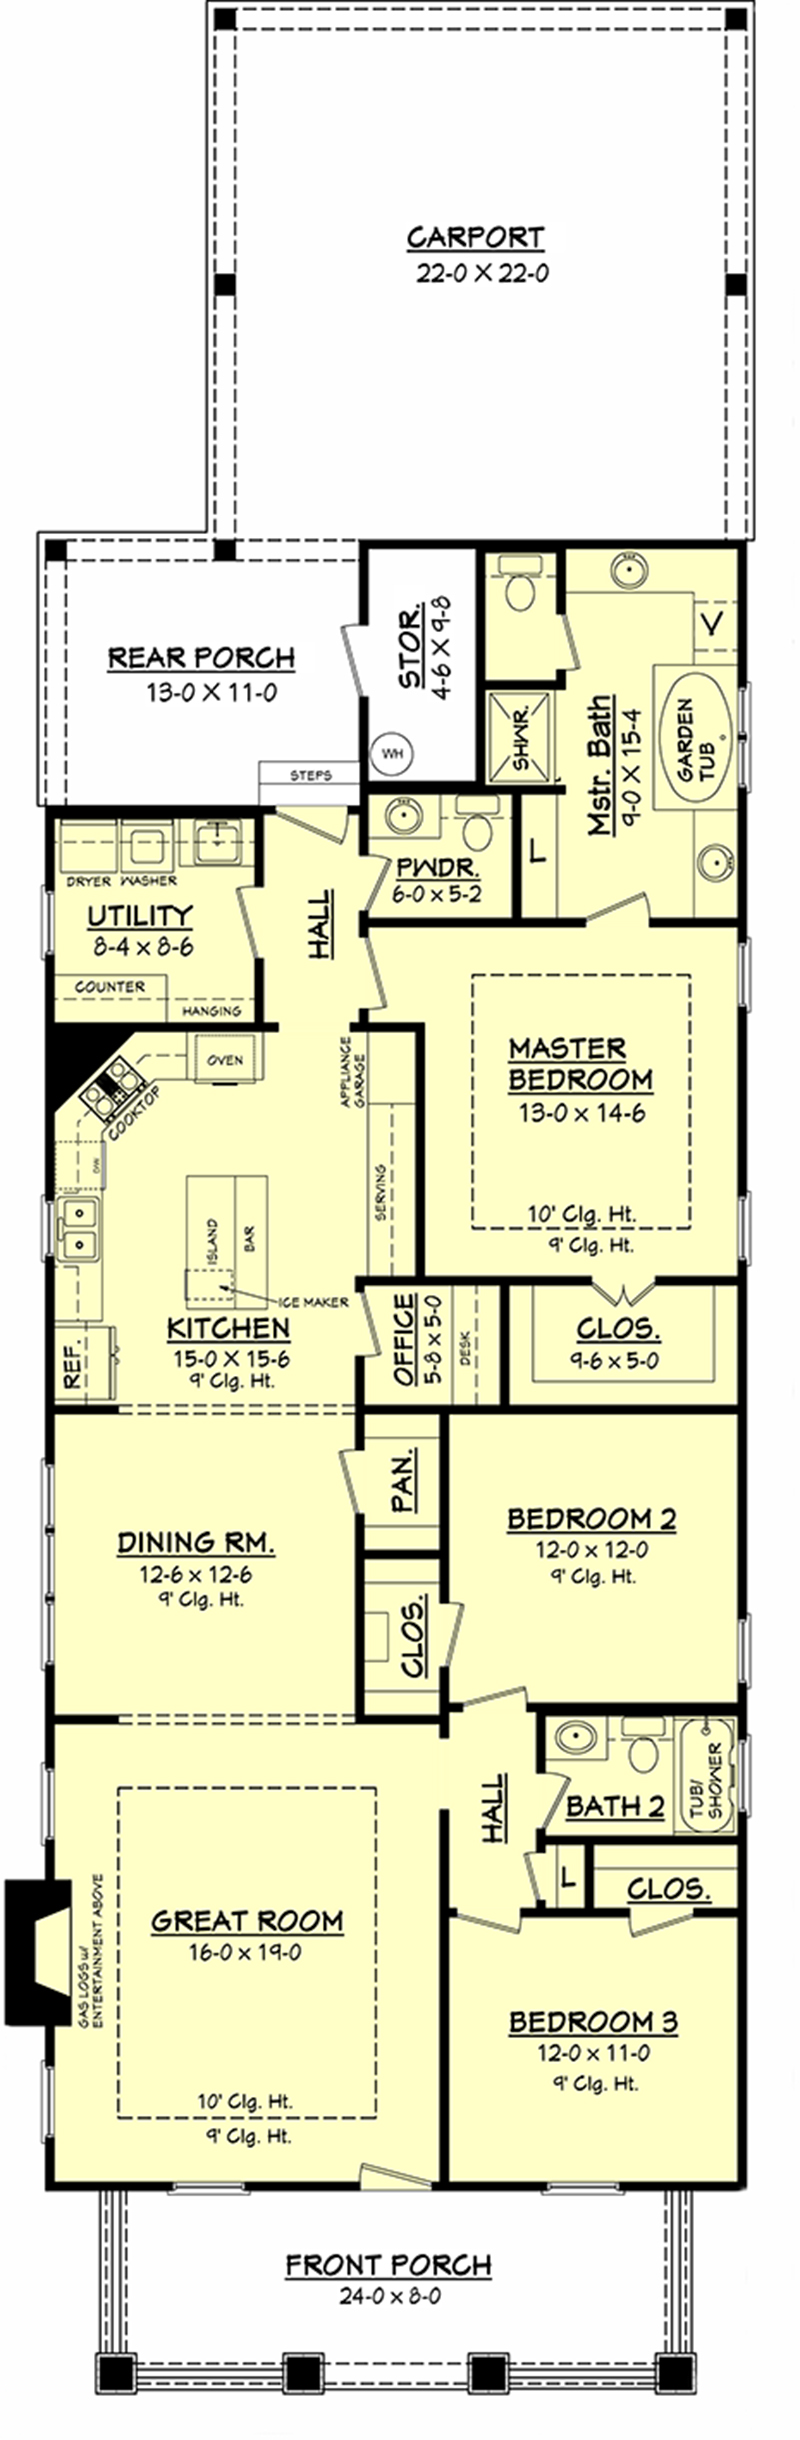 House plan 142 1079 3 bdrm 2 1 2 bath 1800 sq ft for 1800 sf home plans